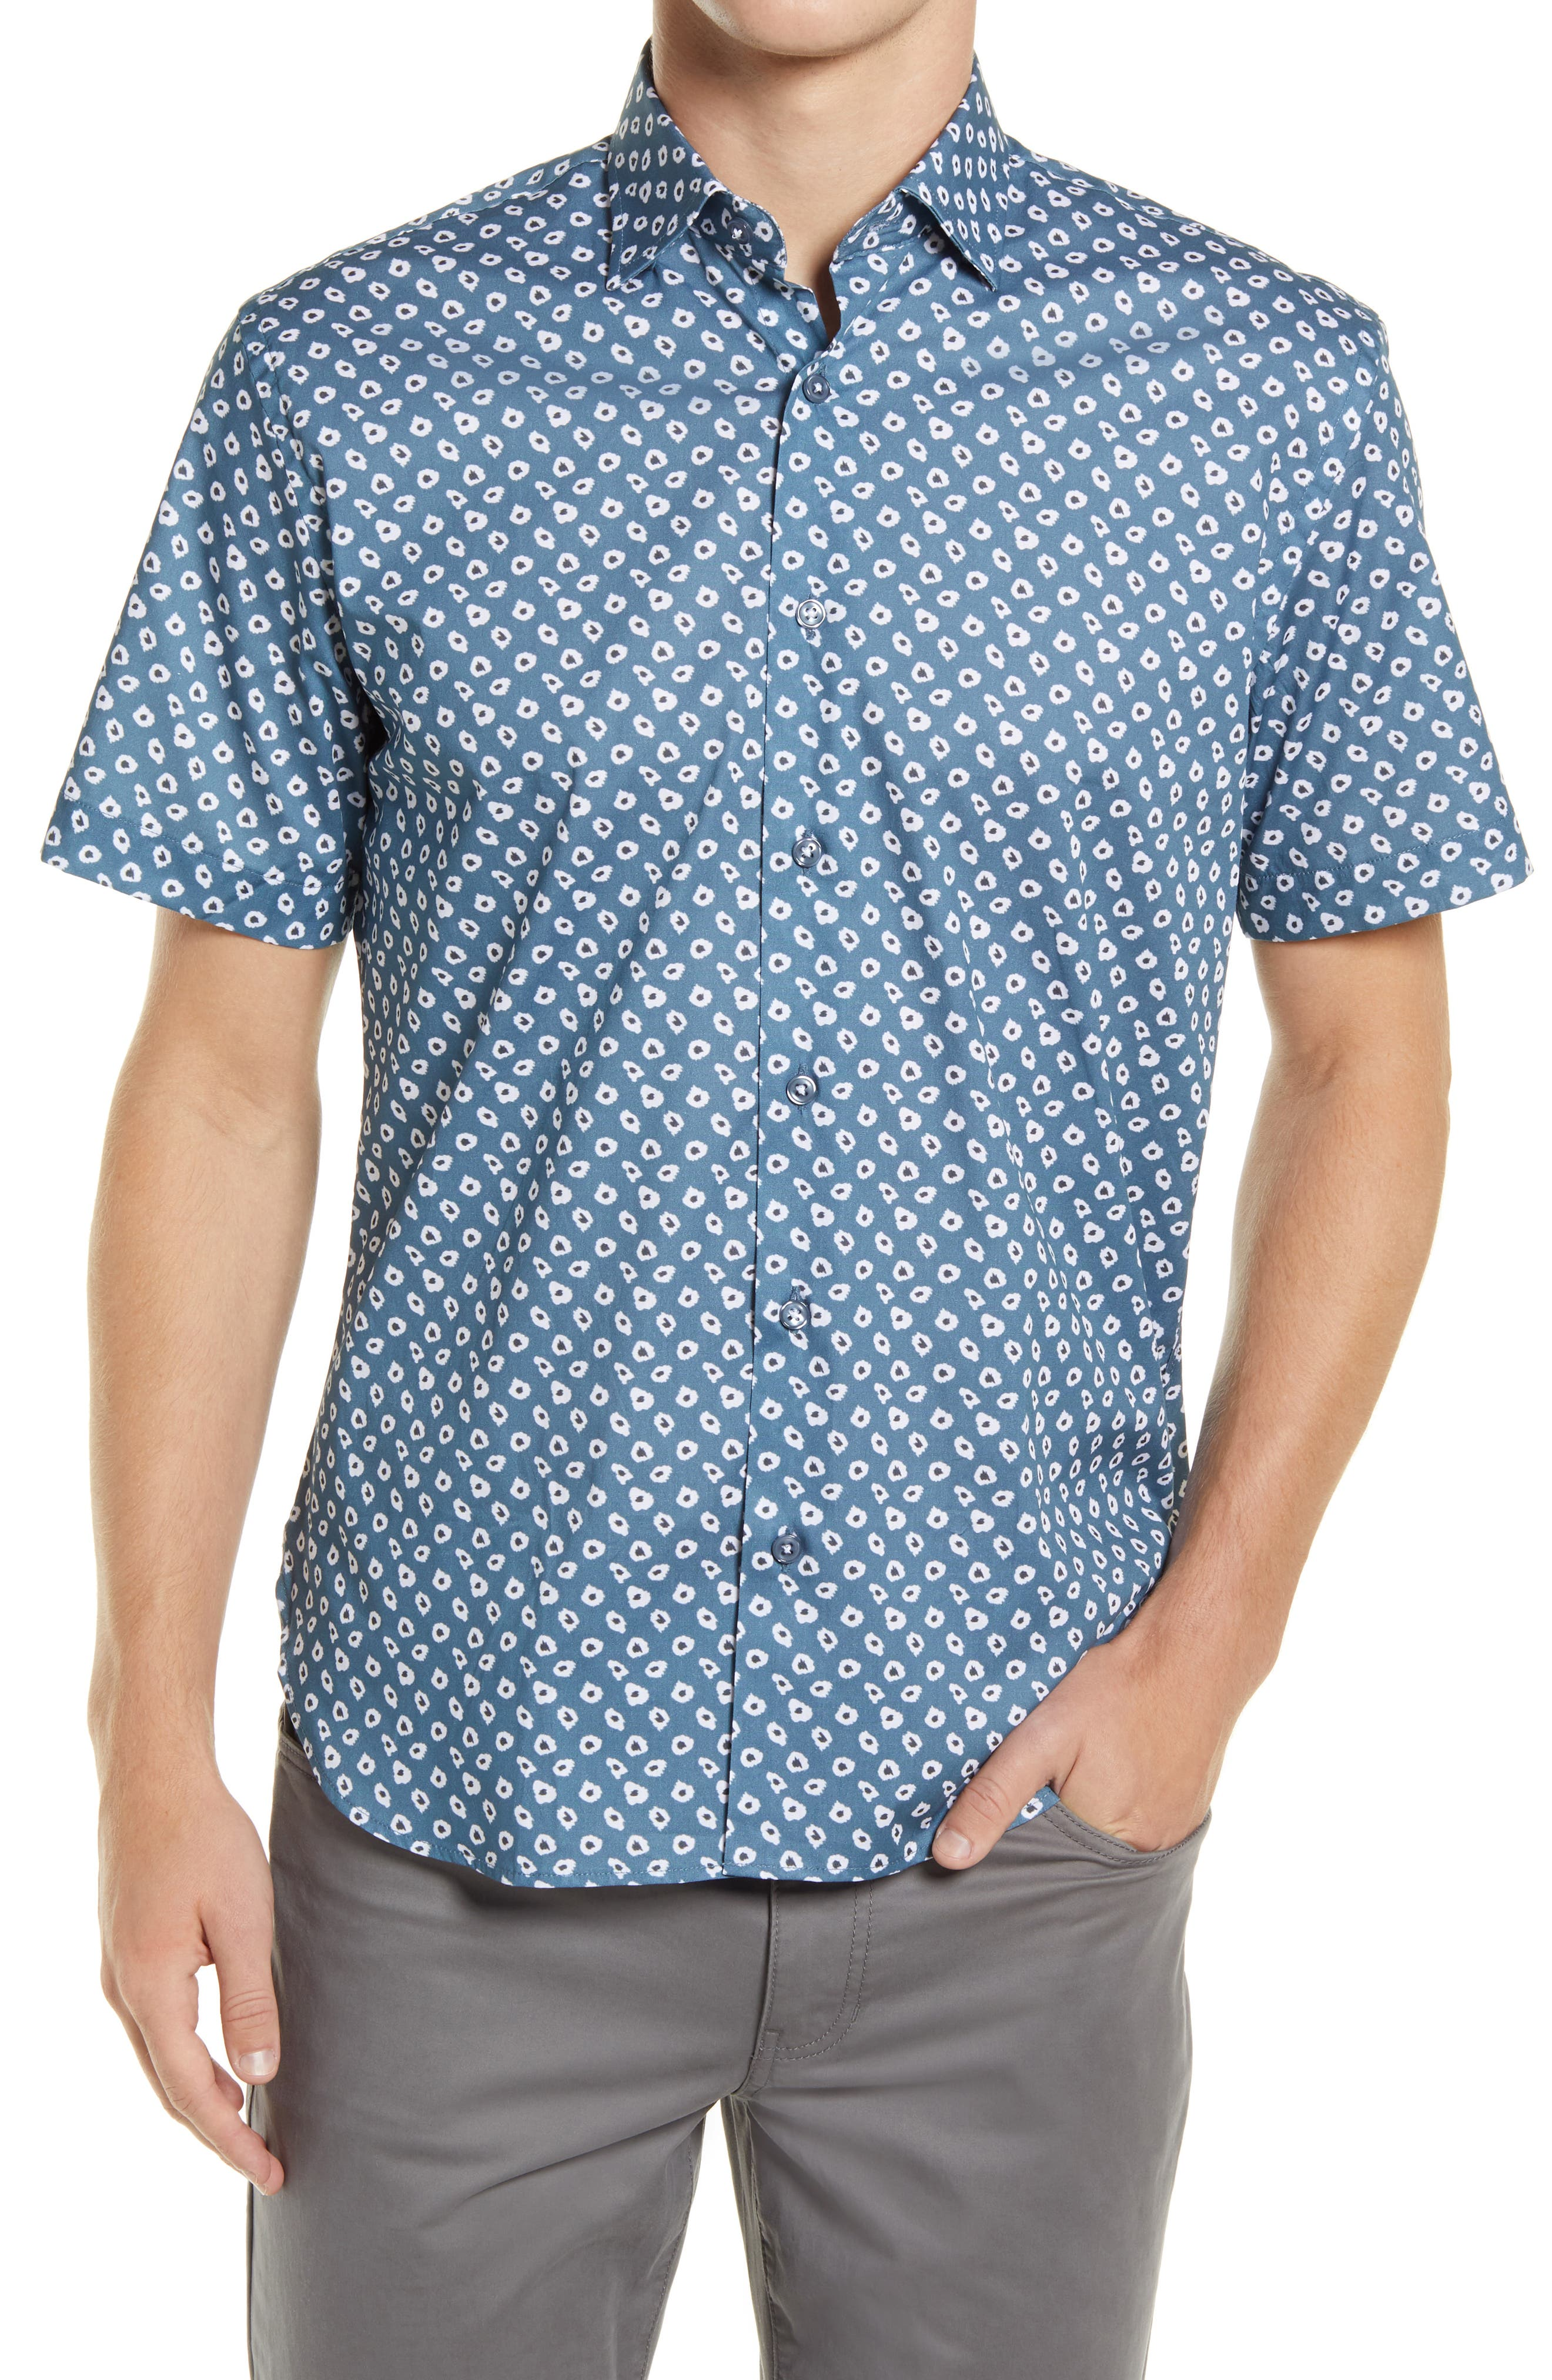 Wide Eyes Short Sleeve Stretch Button-Up Shirt